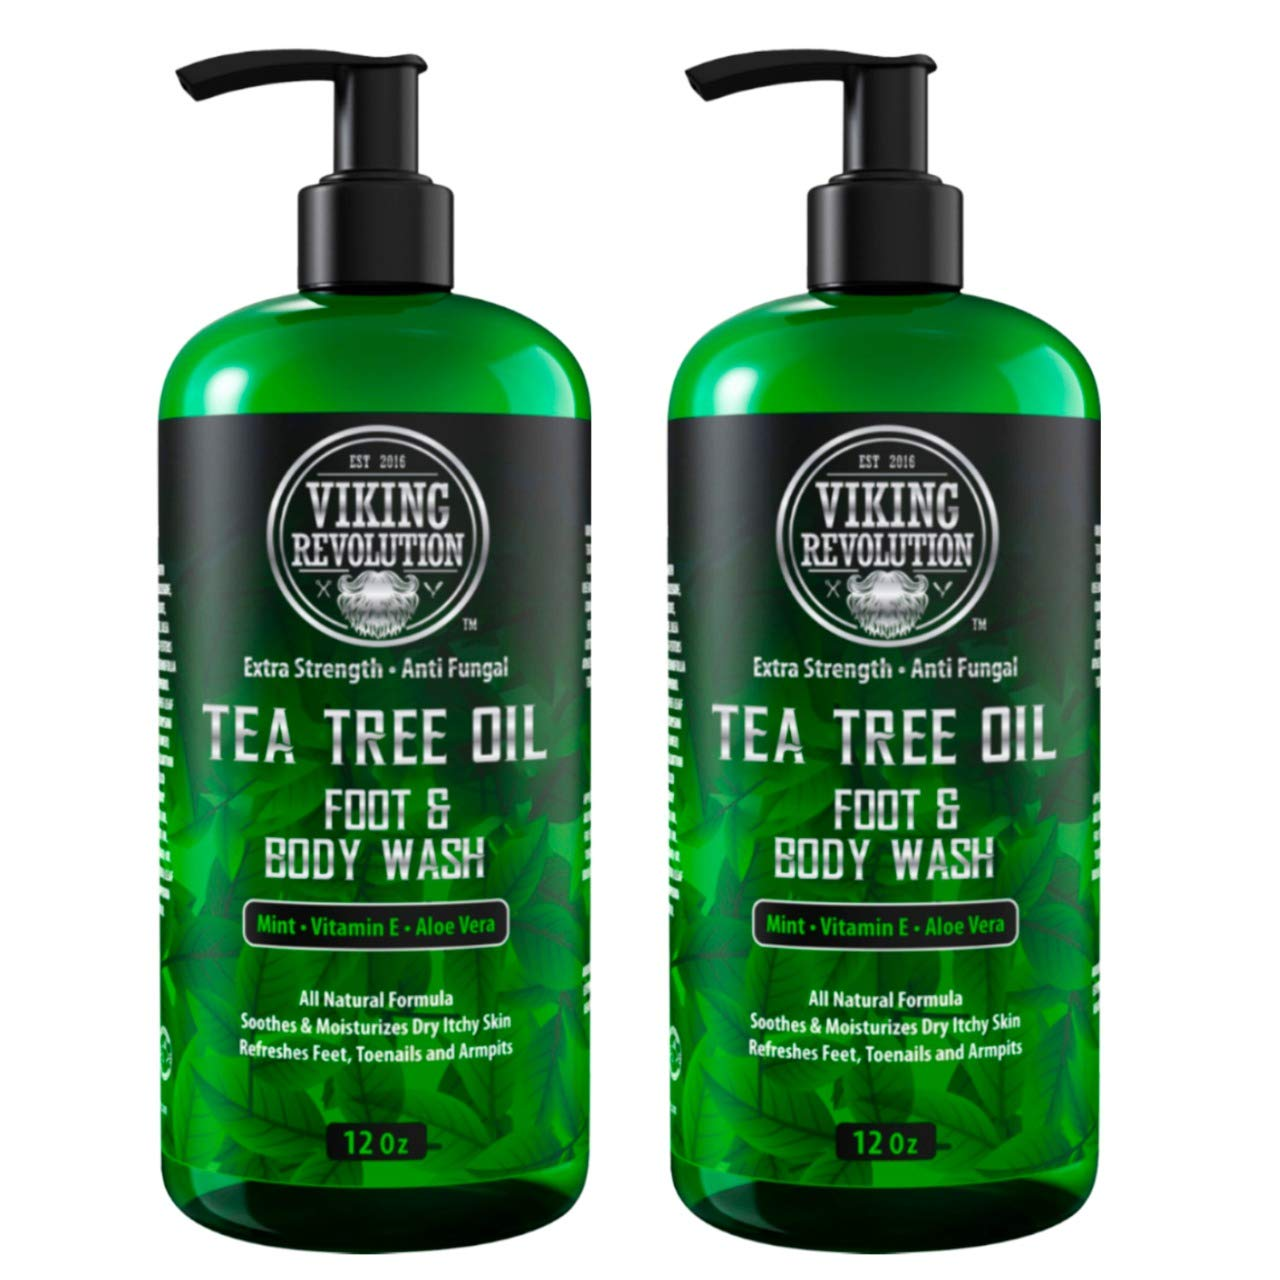 Antifungal Tea Tree Oil Body Wash Soap for Men - Helps Athlete's Foot, Toenail Fungus, Jock Itch, Eczema, Ringworm & Body Odors - Extra Strength Men's Body Wash (2 Pack)